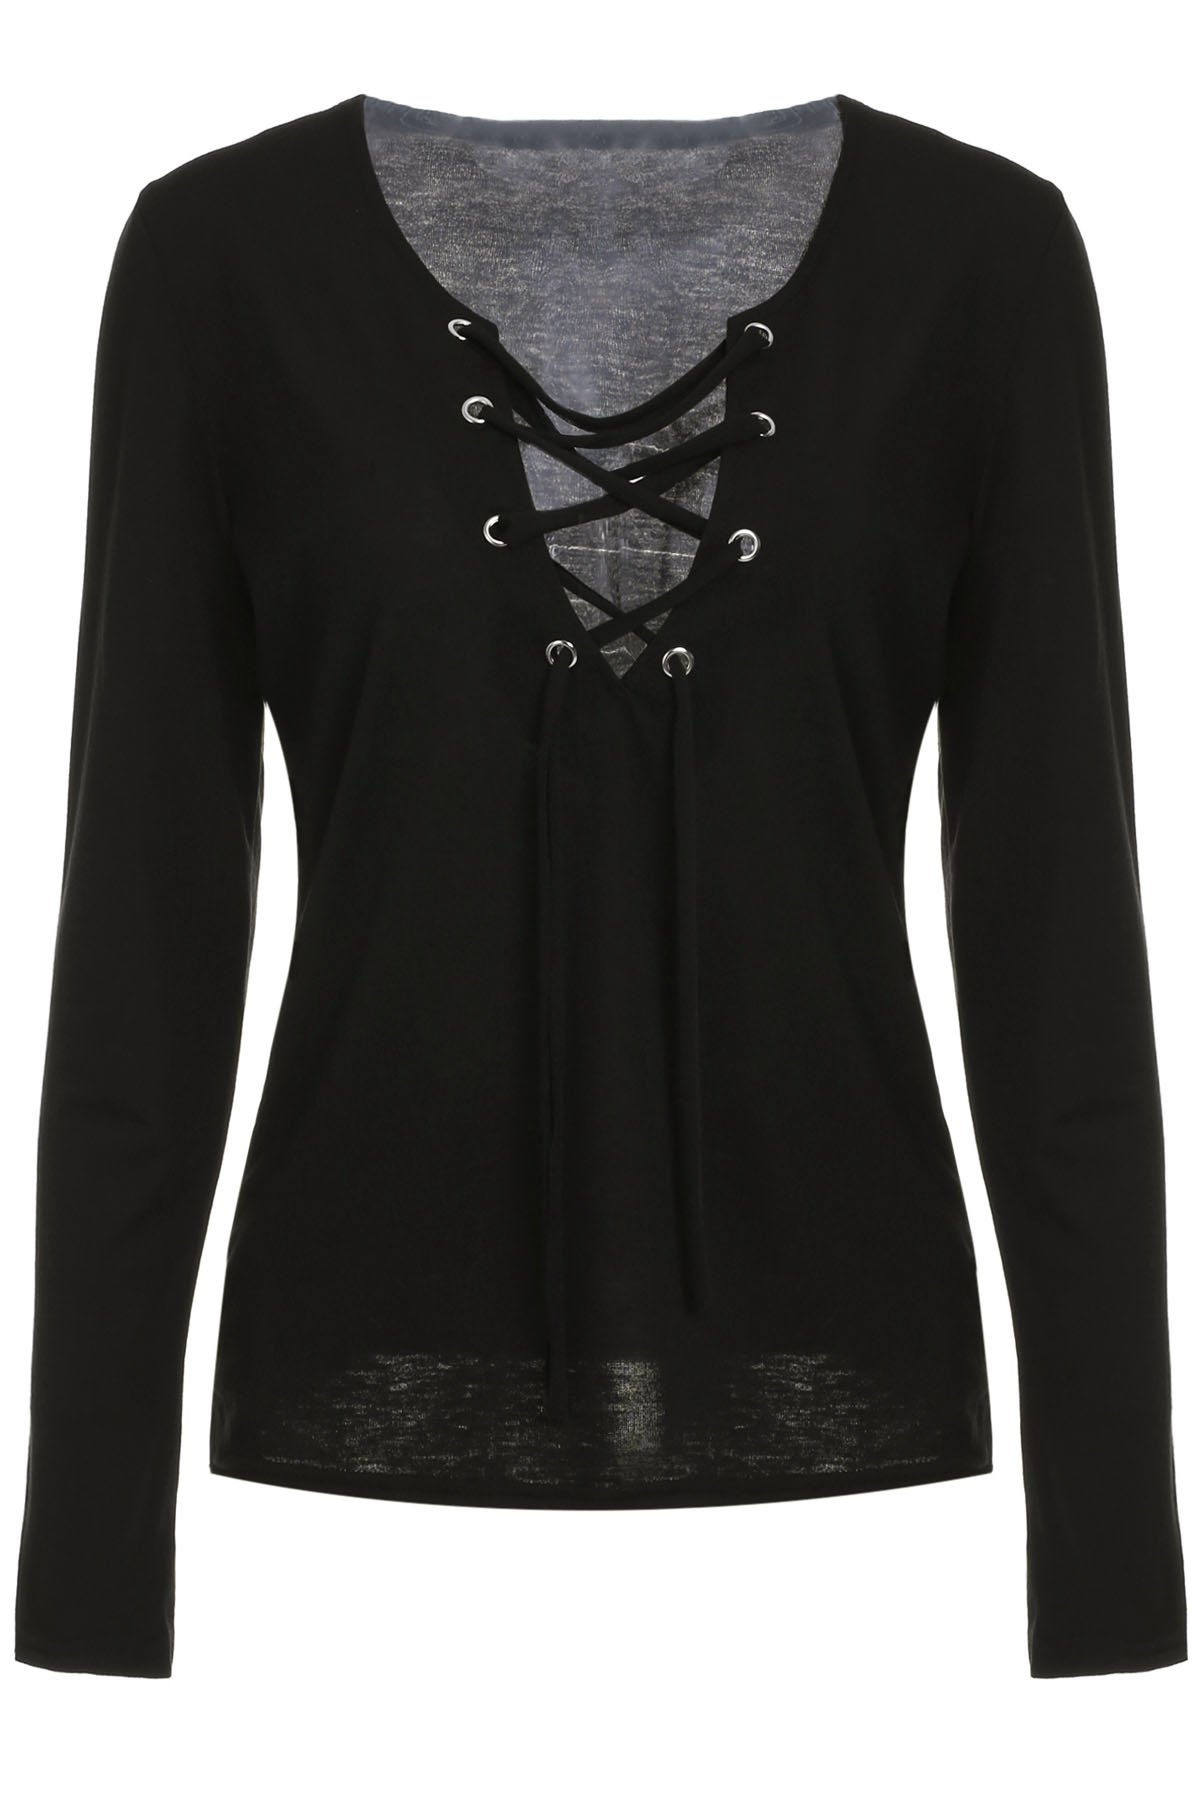 Sexy Plunging Neckline Long Sleeve Lace-Up T-Shirt For Women - BLACK S